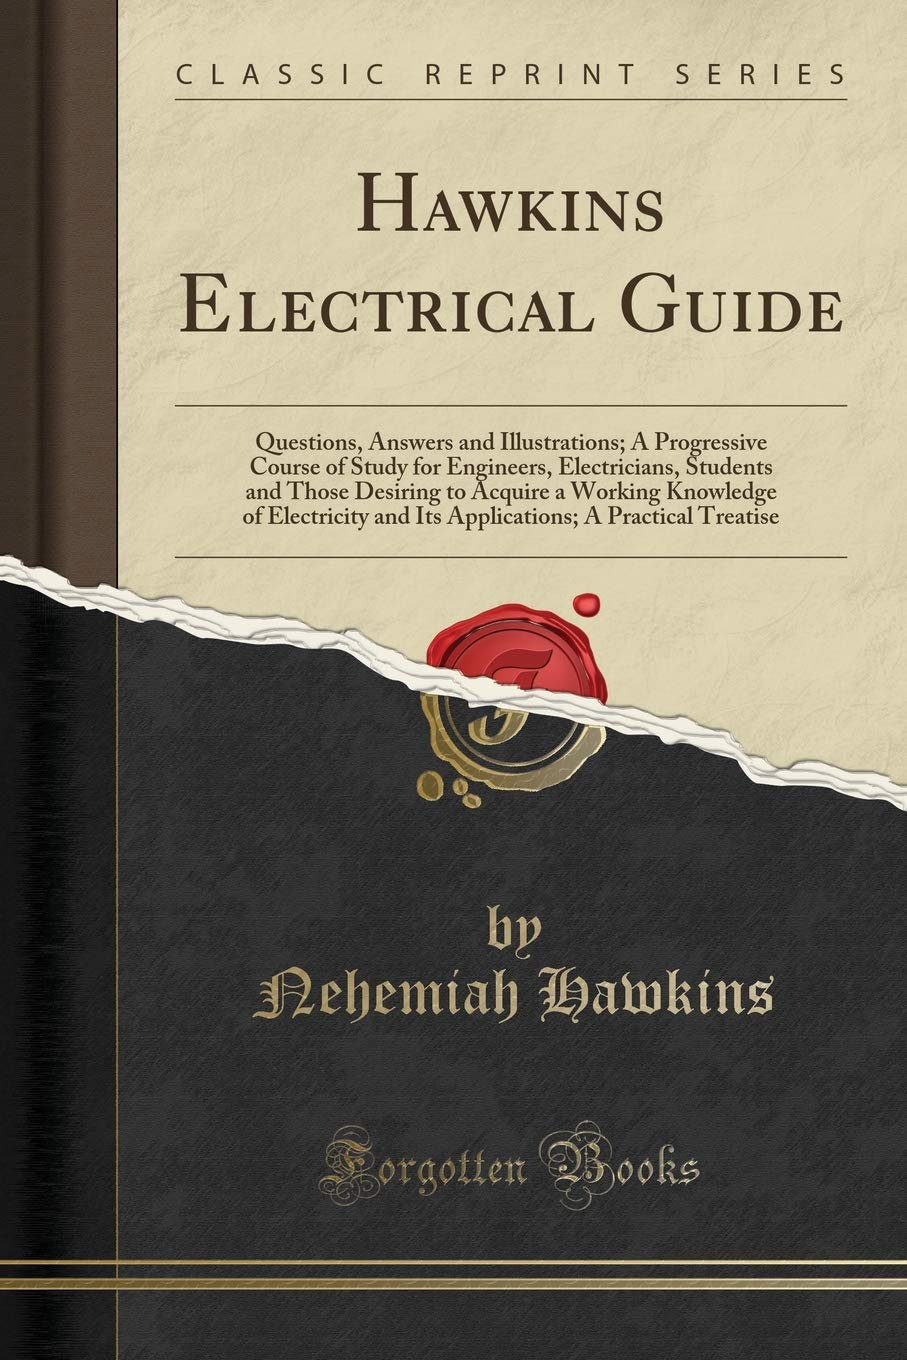 Hawkins Electrical Guide: Questions, Answers and Illustrations; A Progressive Course of Study for Engineers, Electricians, Students and Those Desiring ... and Its Applications; A Practical Treatise PDF ePub fb2 ebook